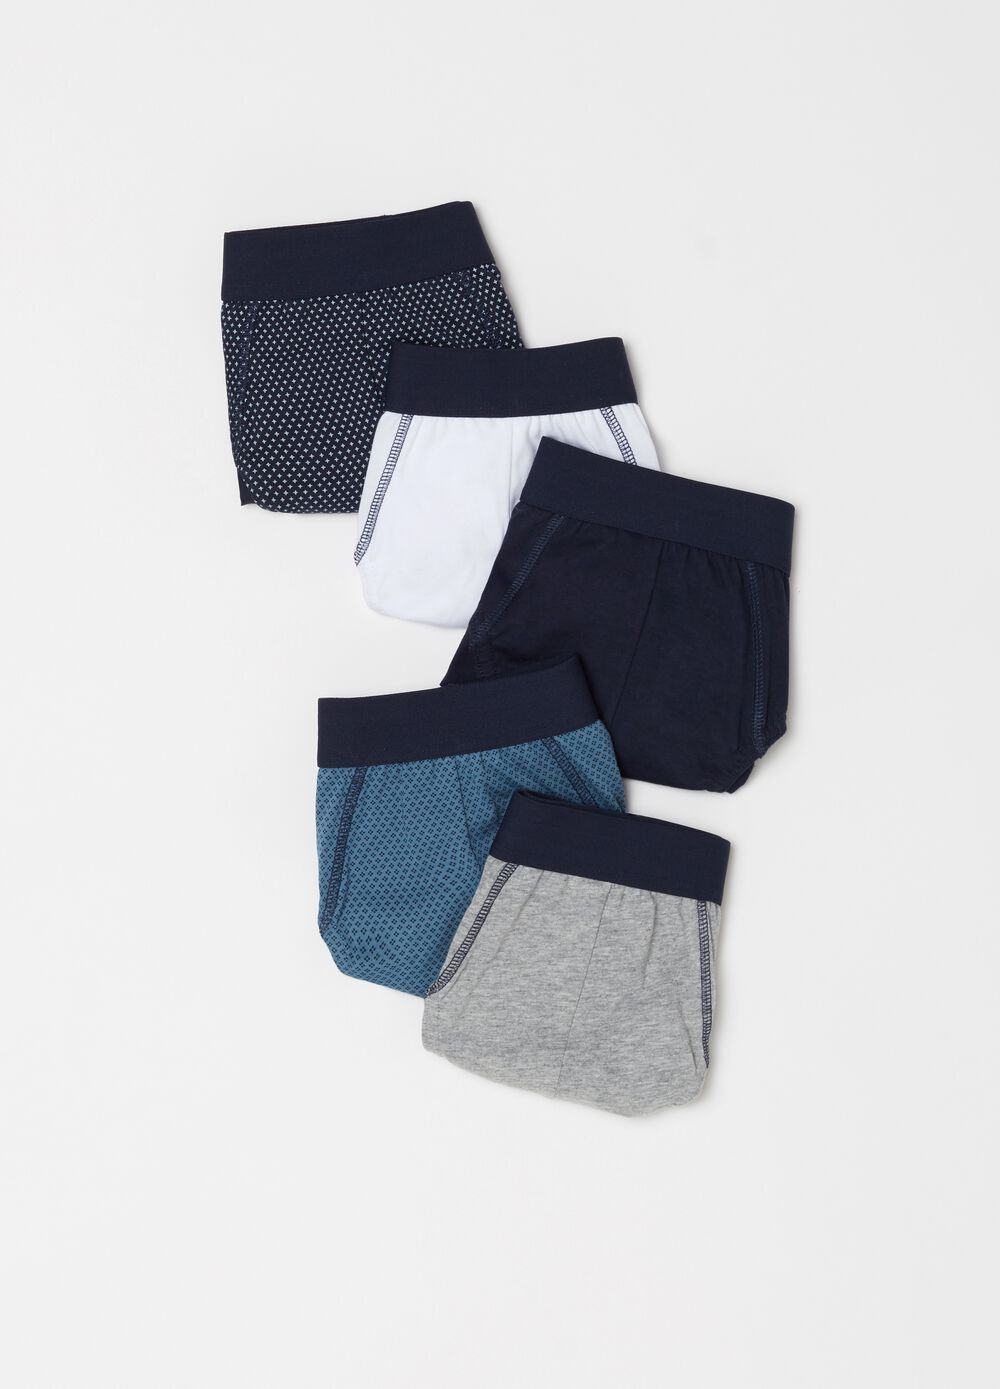 Set of patterned briefs in 100% cotton